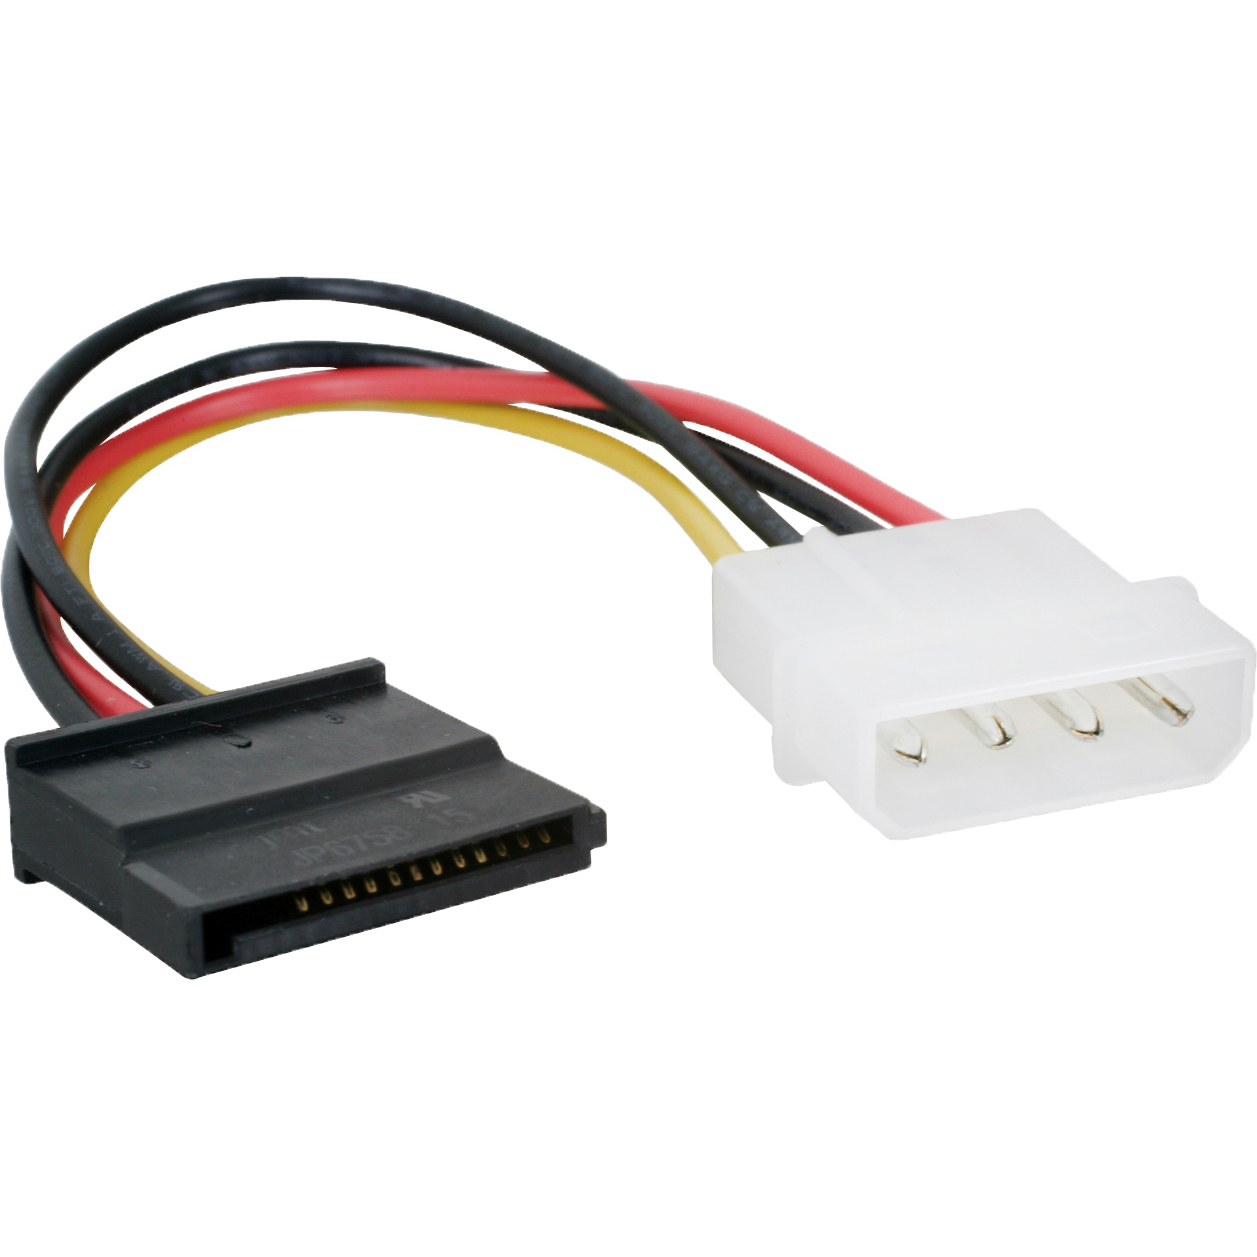 11w3 08206 6 inch molex to sata power cable 4 pin molex to sata power molex to sata wiring diagram at bakdesigns.co